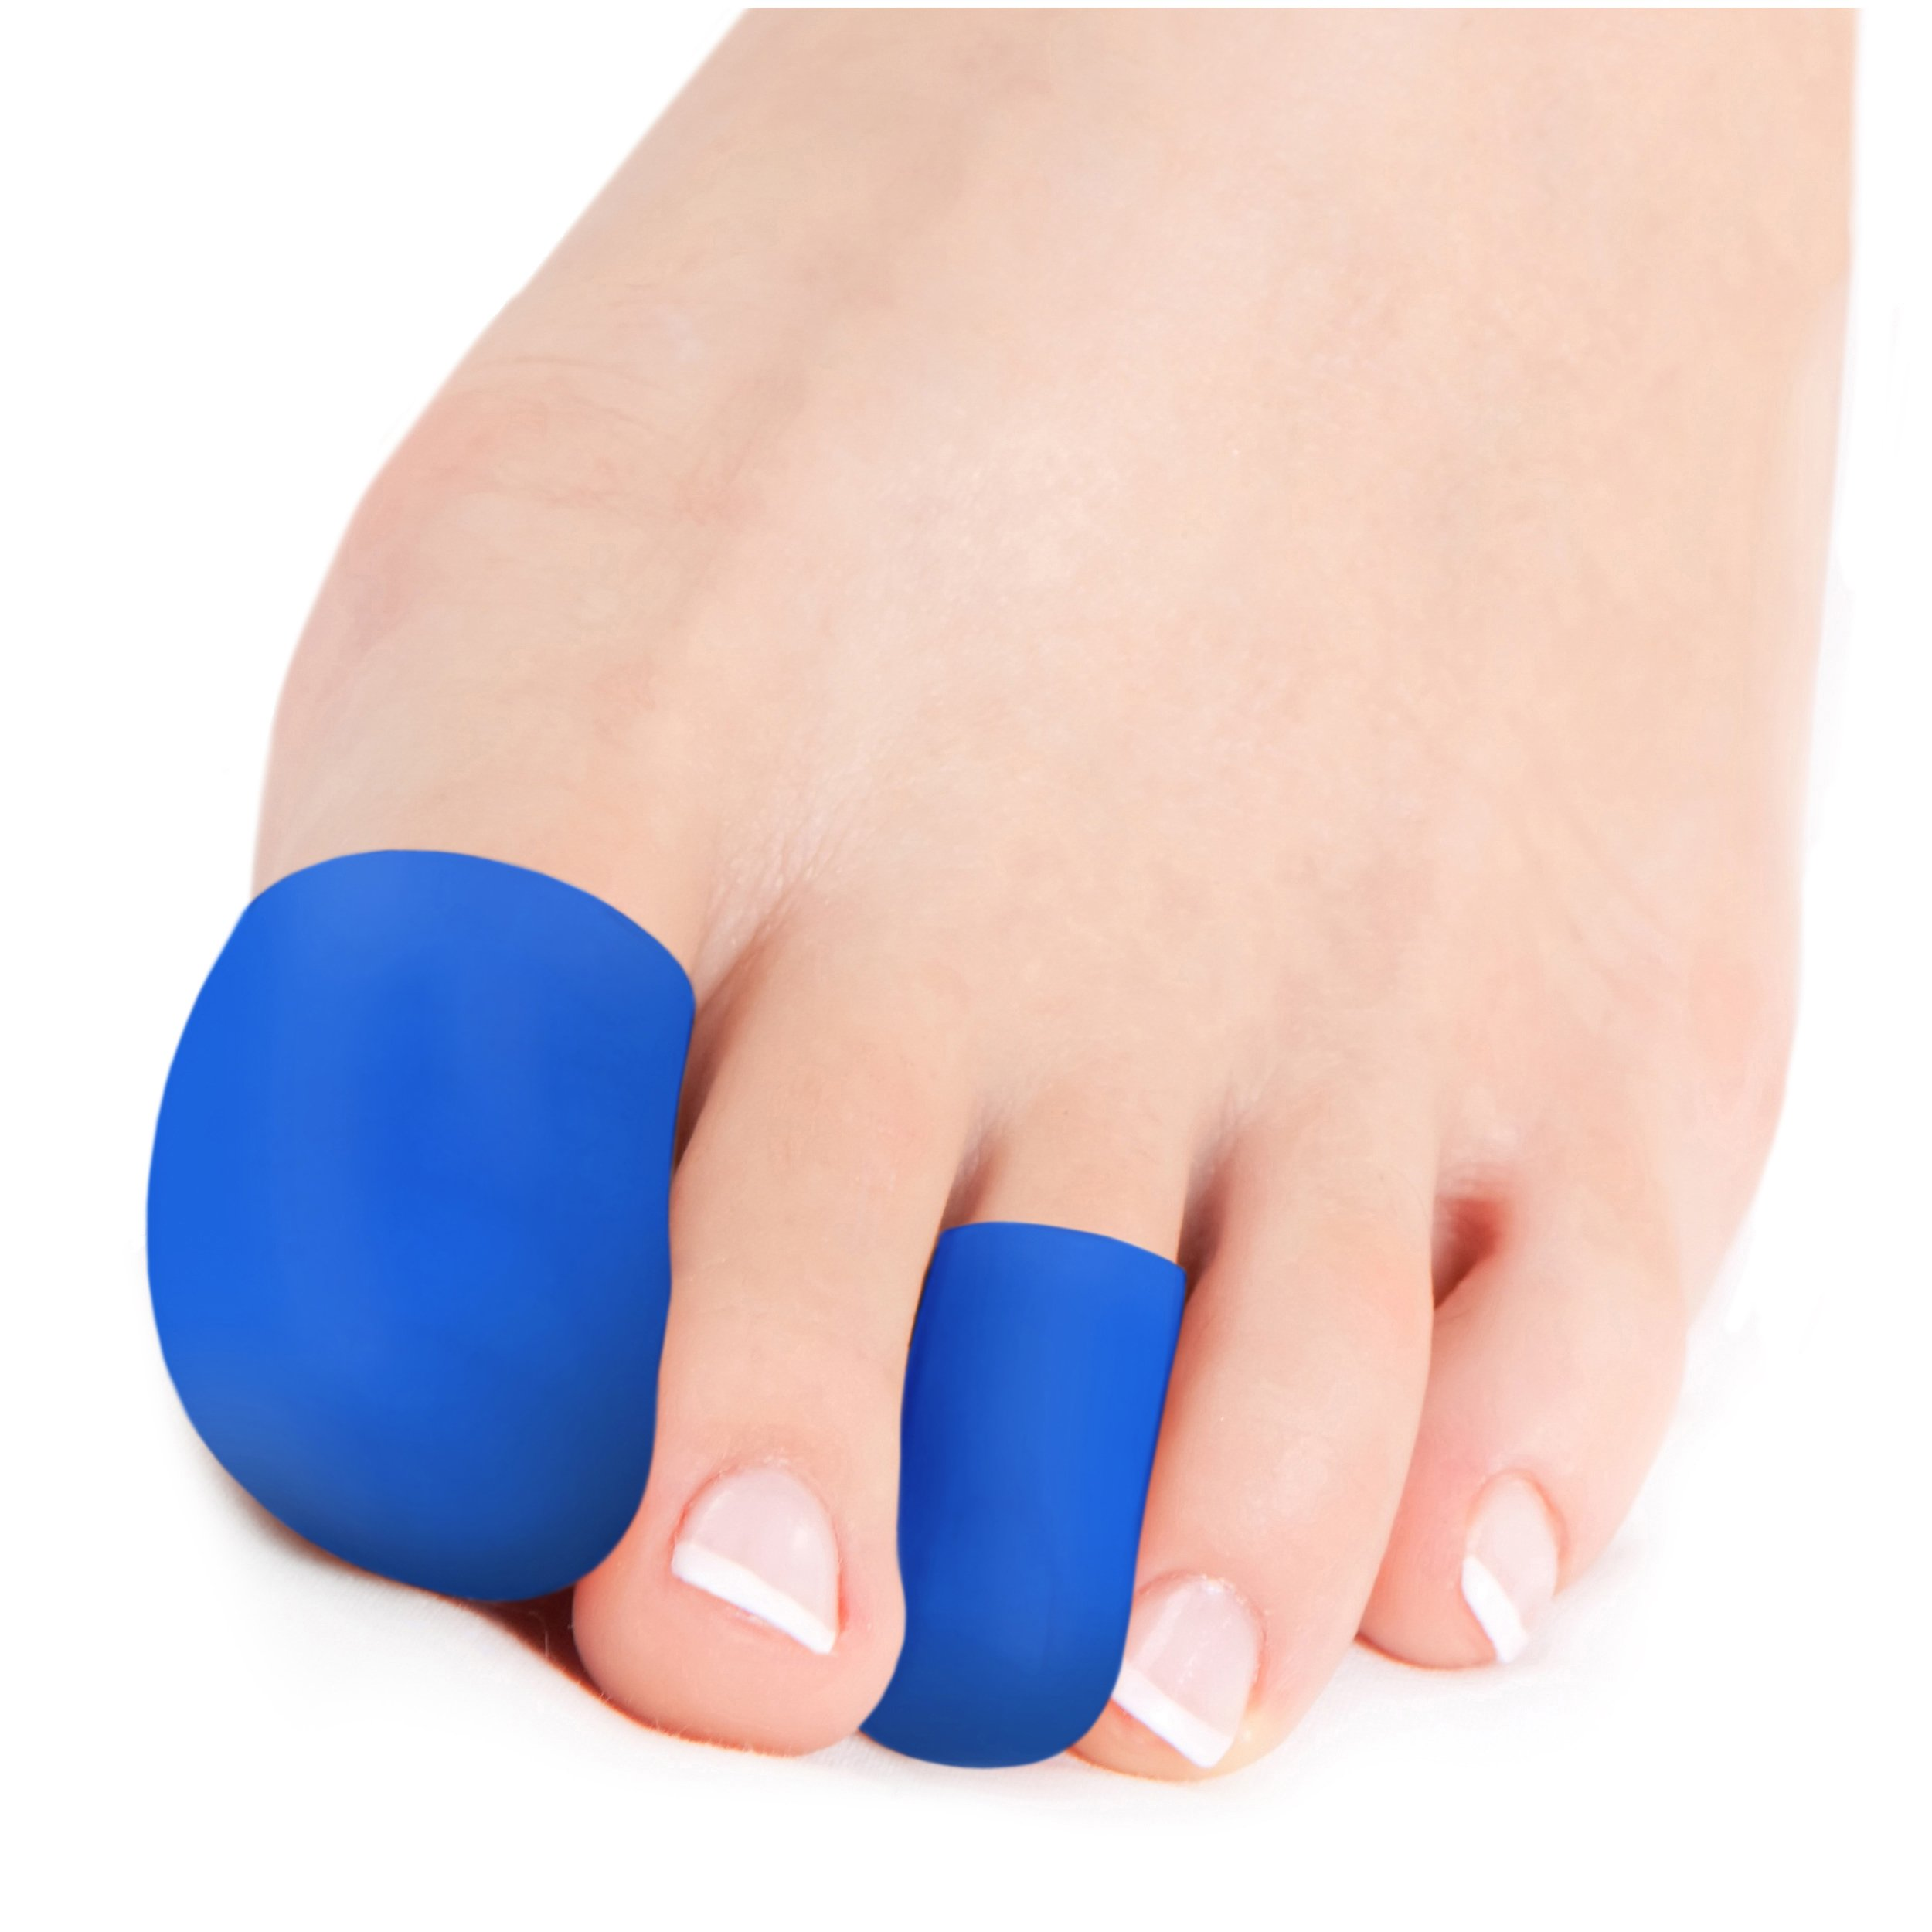 Squad Goods Silicone Toe Cap protector and finger sleeves - 6 Pieces Blue with Bonus Travel Case